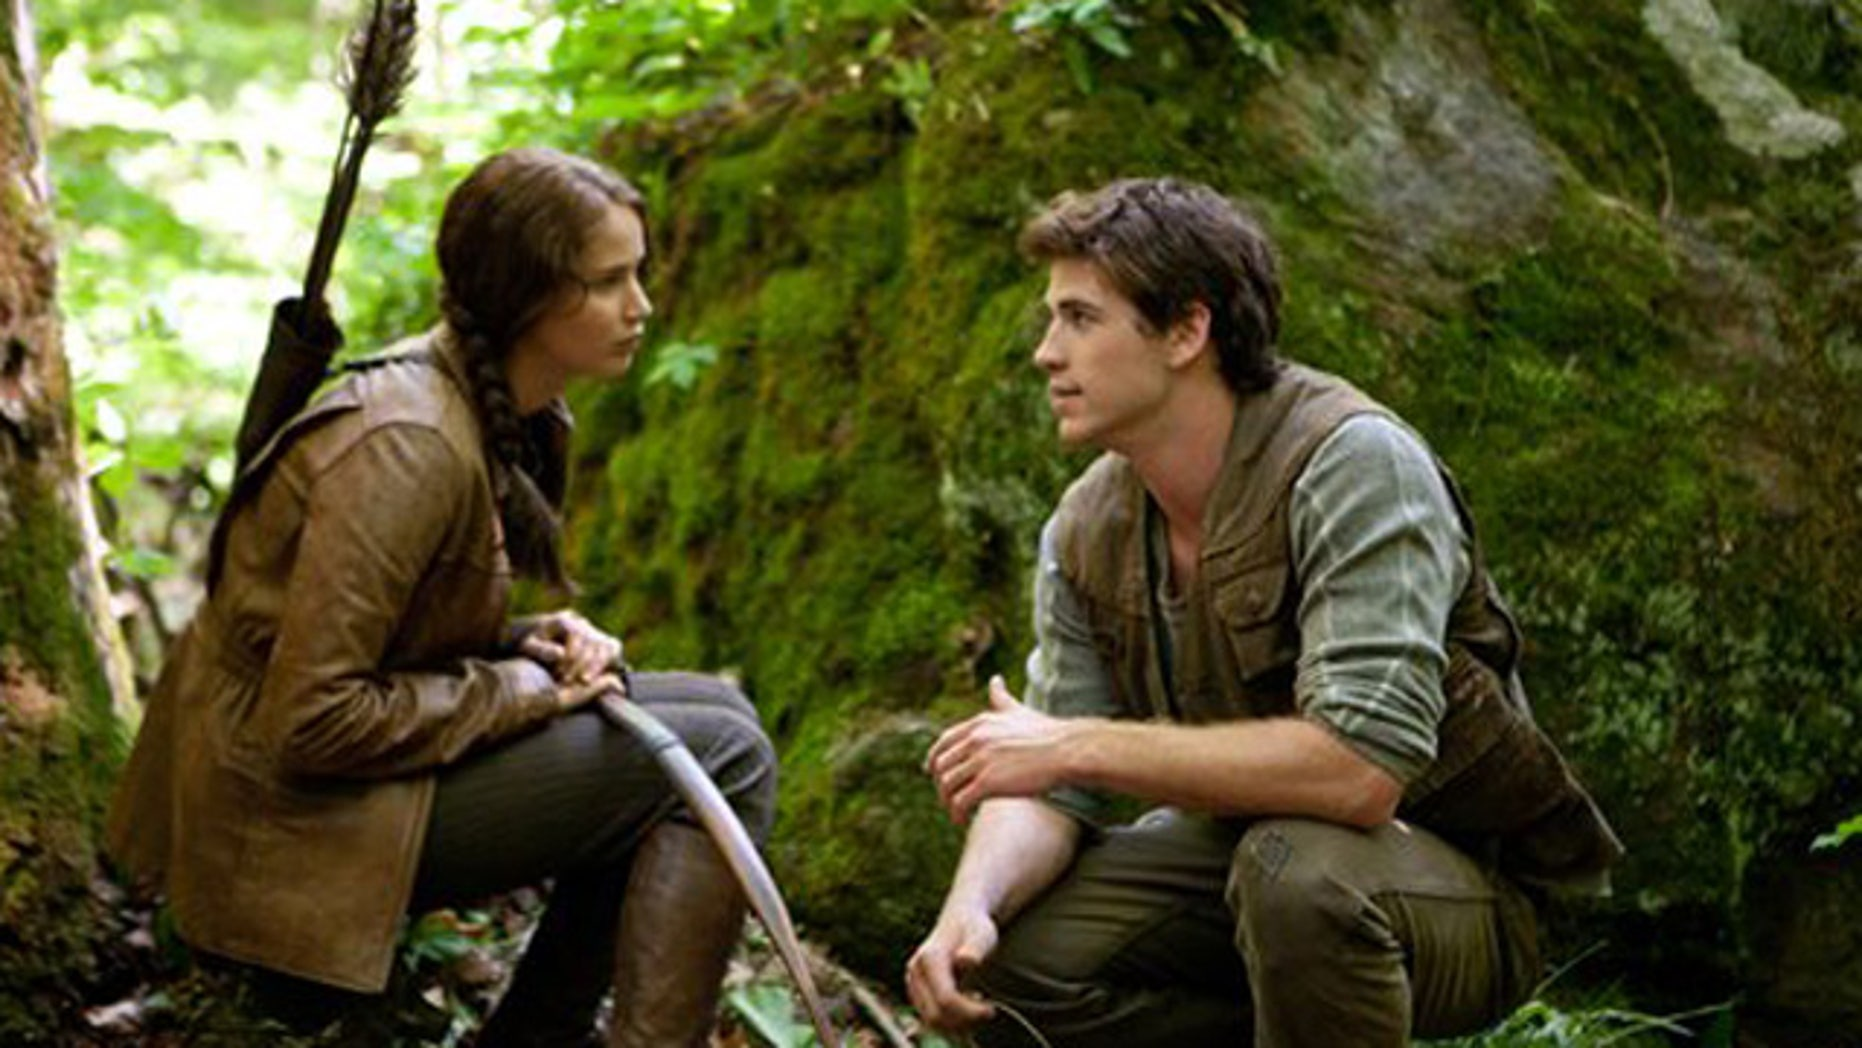 In this image released by Lionsgate, Jennifer Lawrence portrays Katniss Everdeen, left, and Liam Hemsworth portrays Gale Hawthorne in a scene from 'The Hunger Games.'